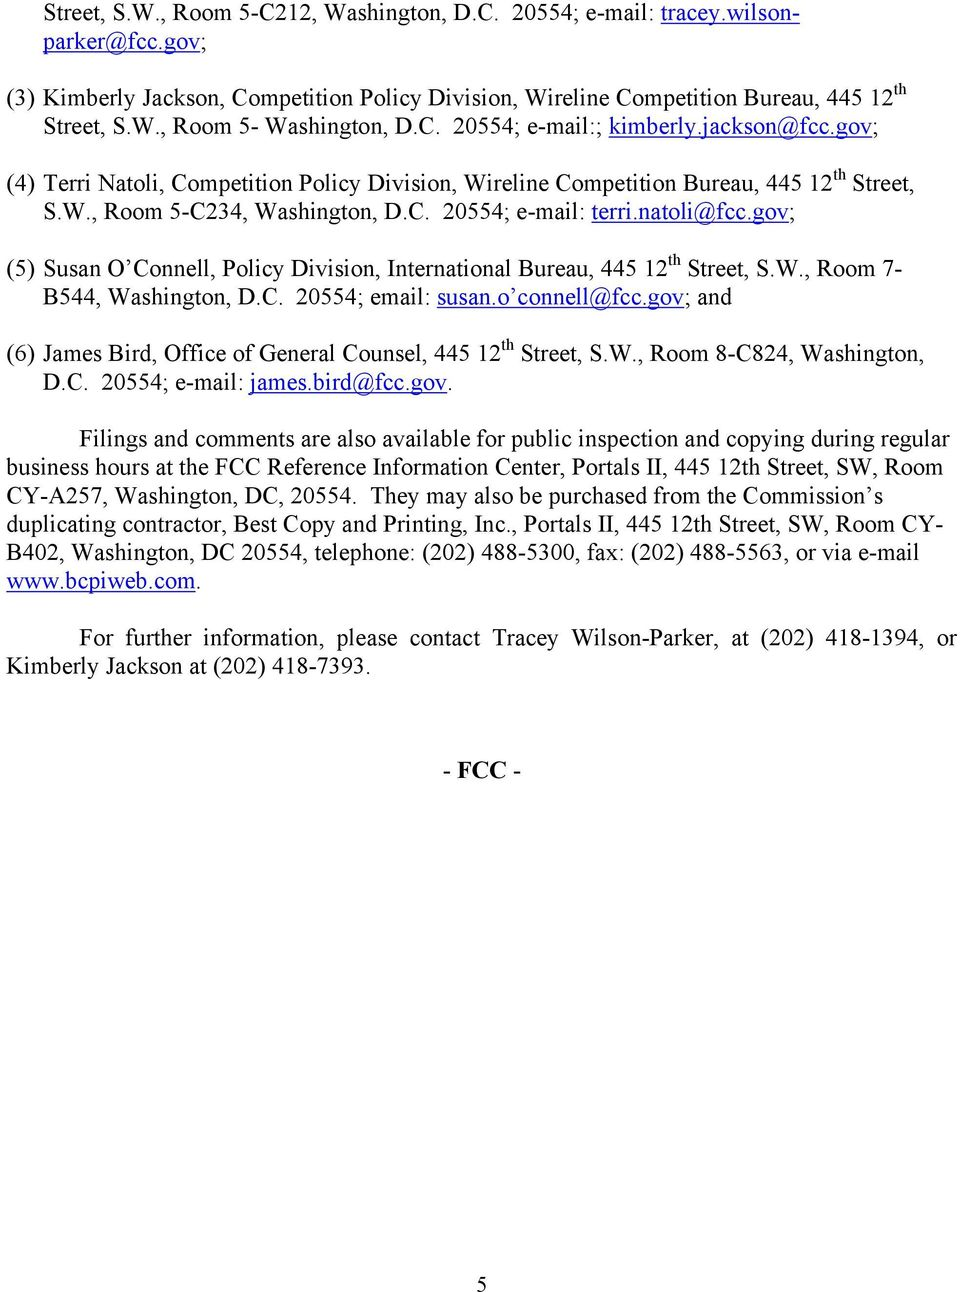 natoli@fcc.gov; (5) Susan O Connell, Policy Division, International Bureau, 445 12 th Street, S.W., Room 7- B544, Washington, D.C. 20554; email: susan.o connell@fcc.